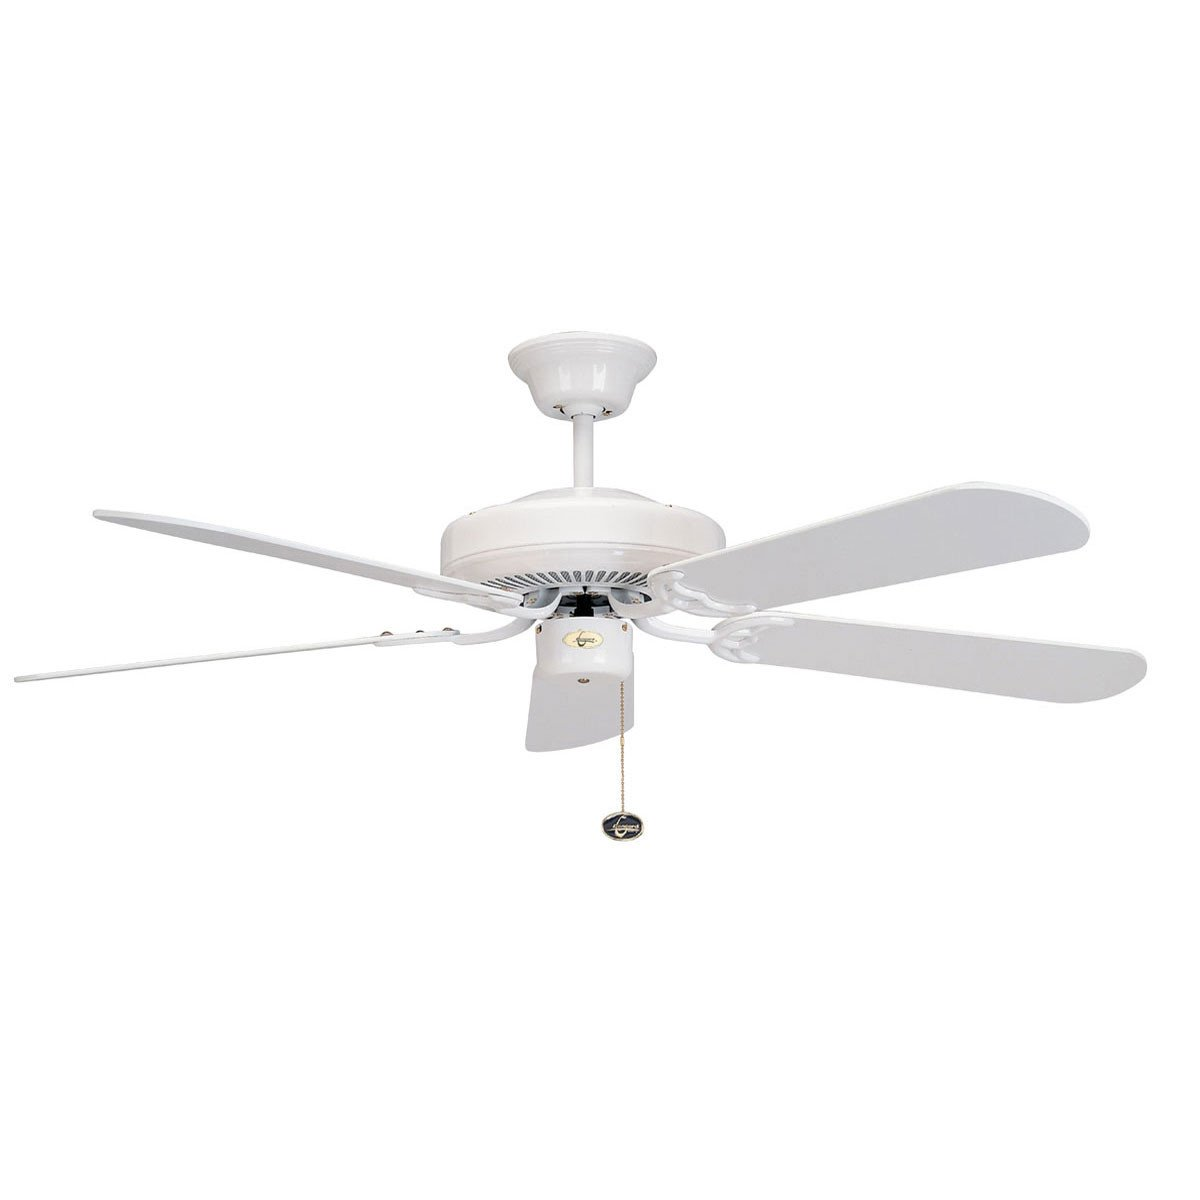 "Concord Fans Decorama Energy Saver Modern 52"" White Ceiling Fan"